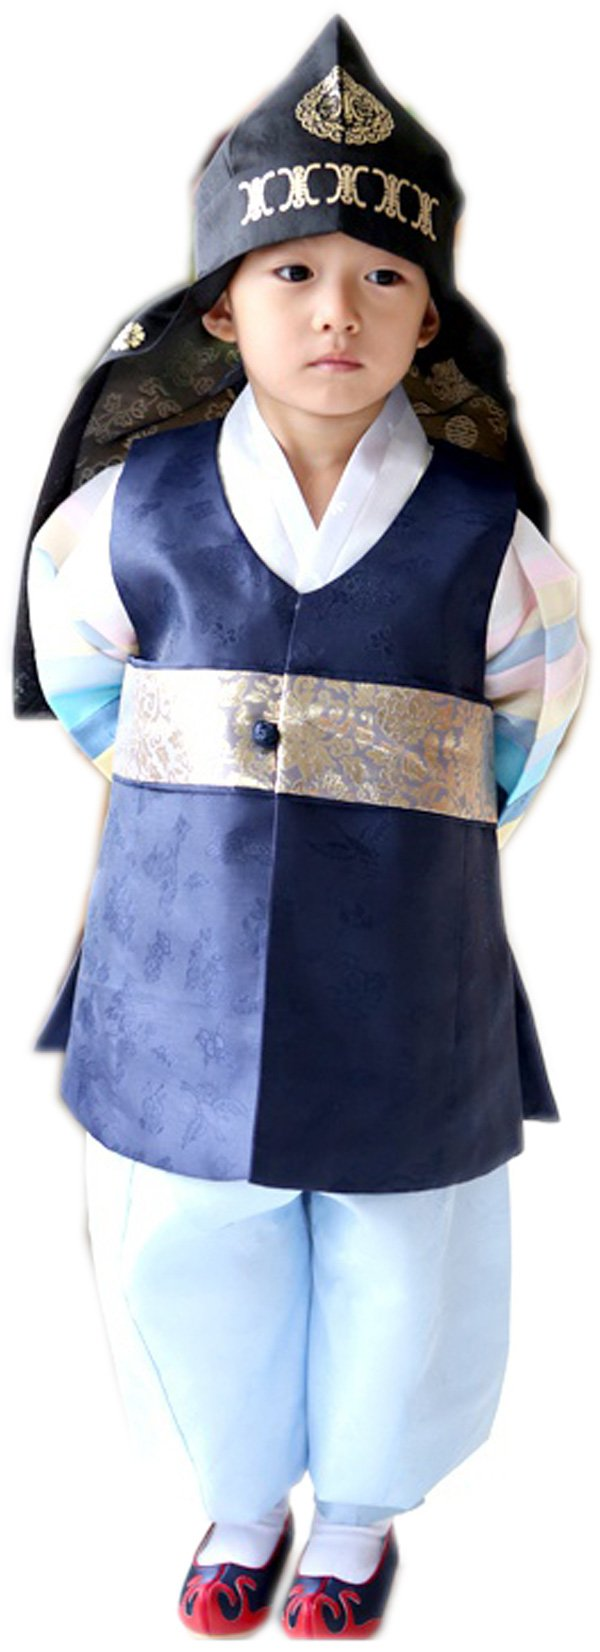 Korean Hanboks boys babys kids traditional costumes birthday party DOLBOK hb41 (2 ages)